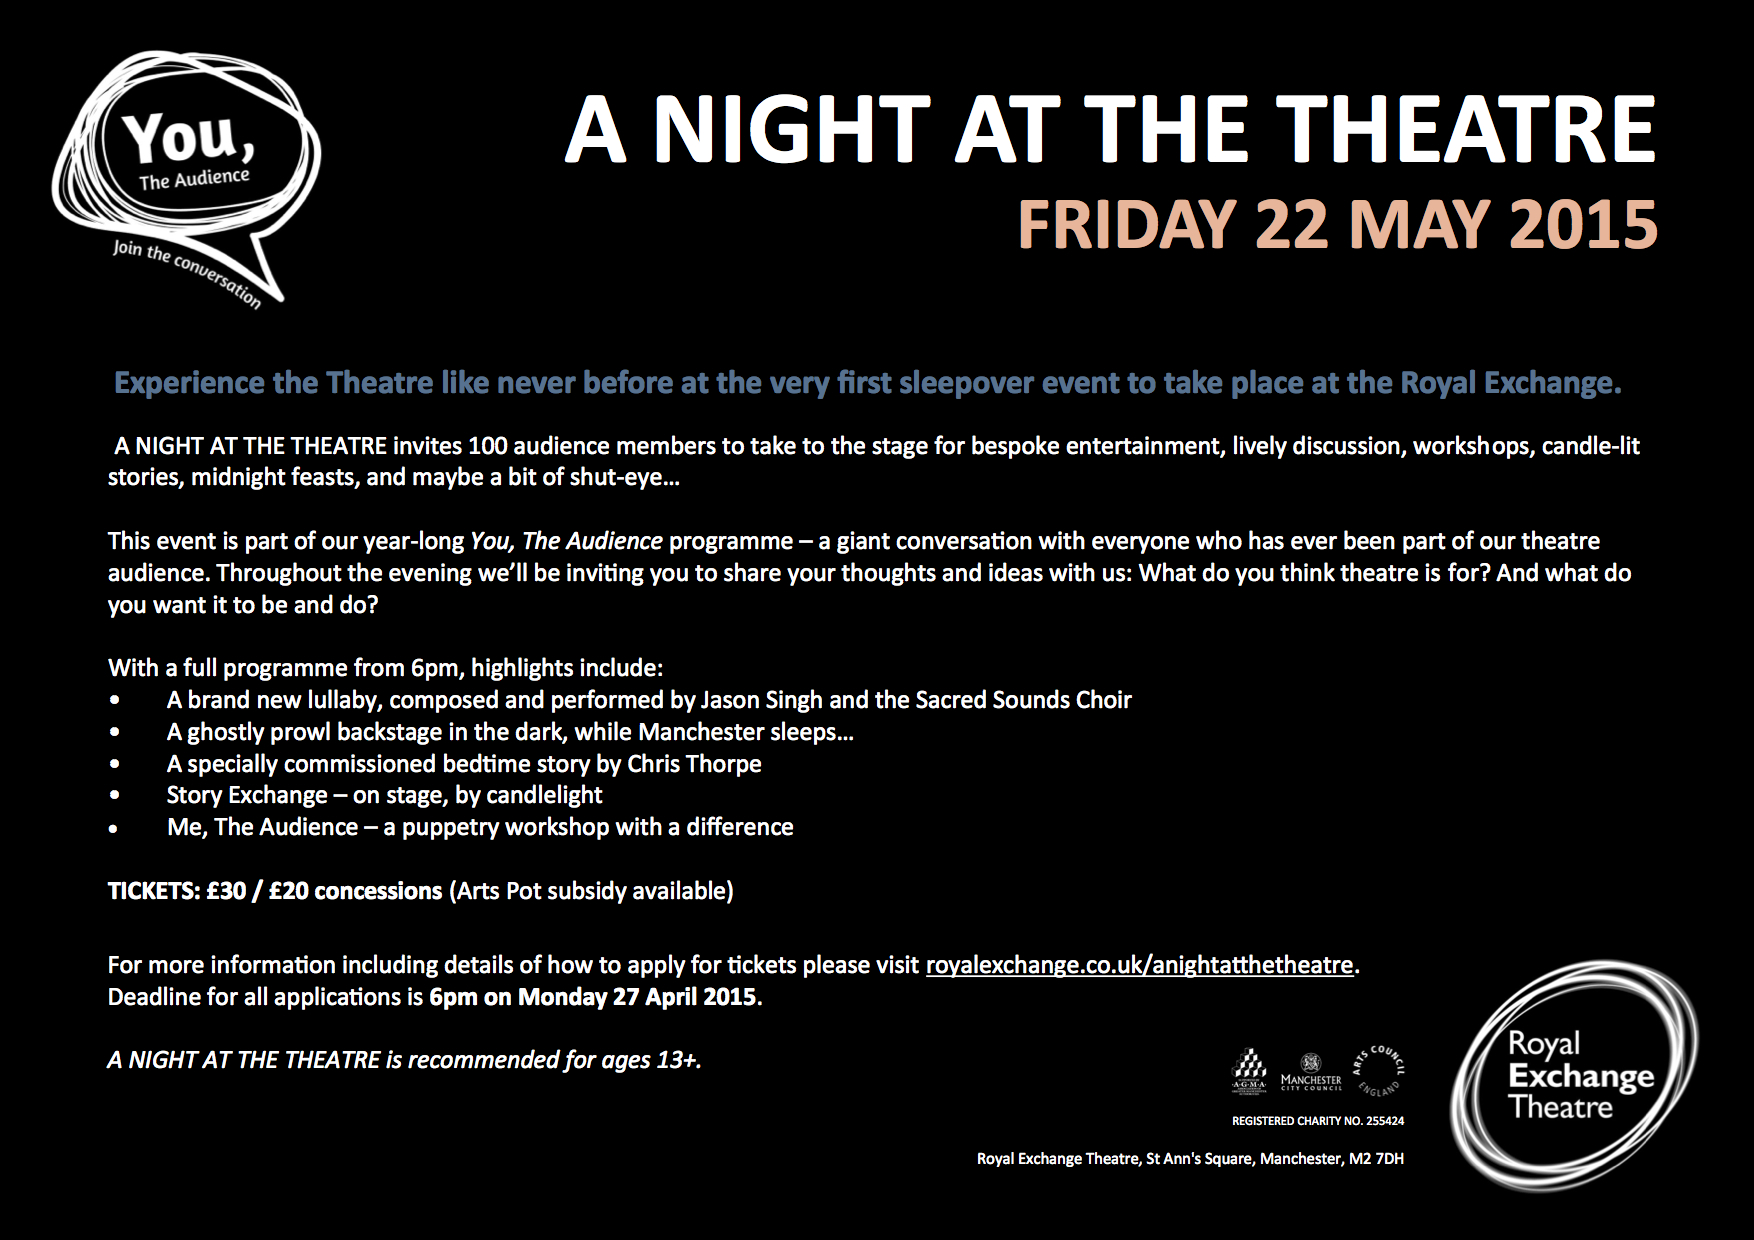 A Night at the Theatre - A Sleepover